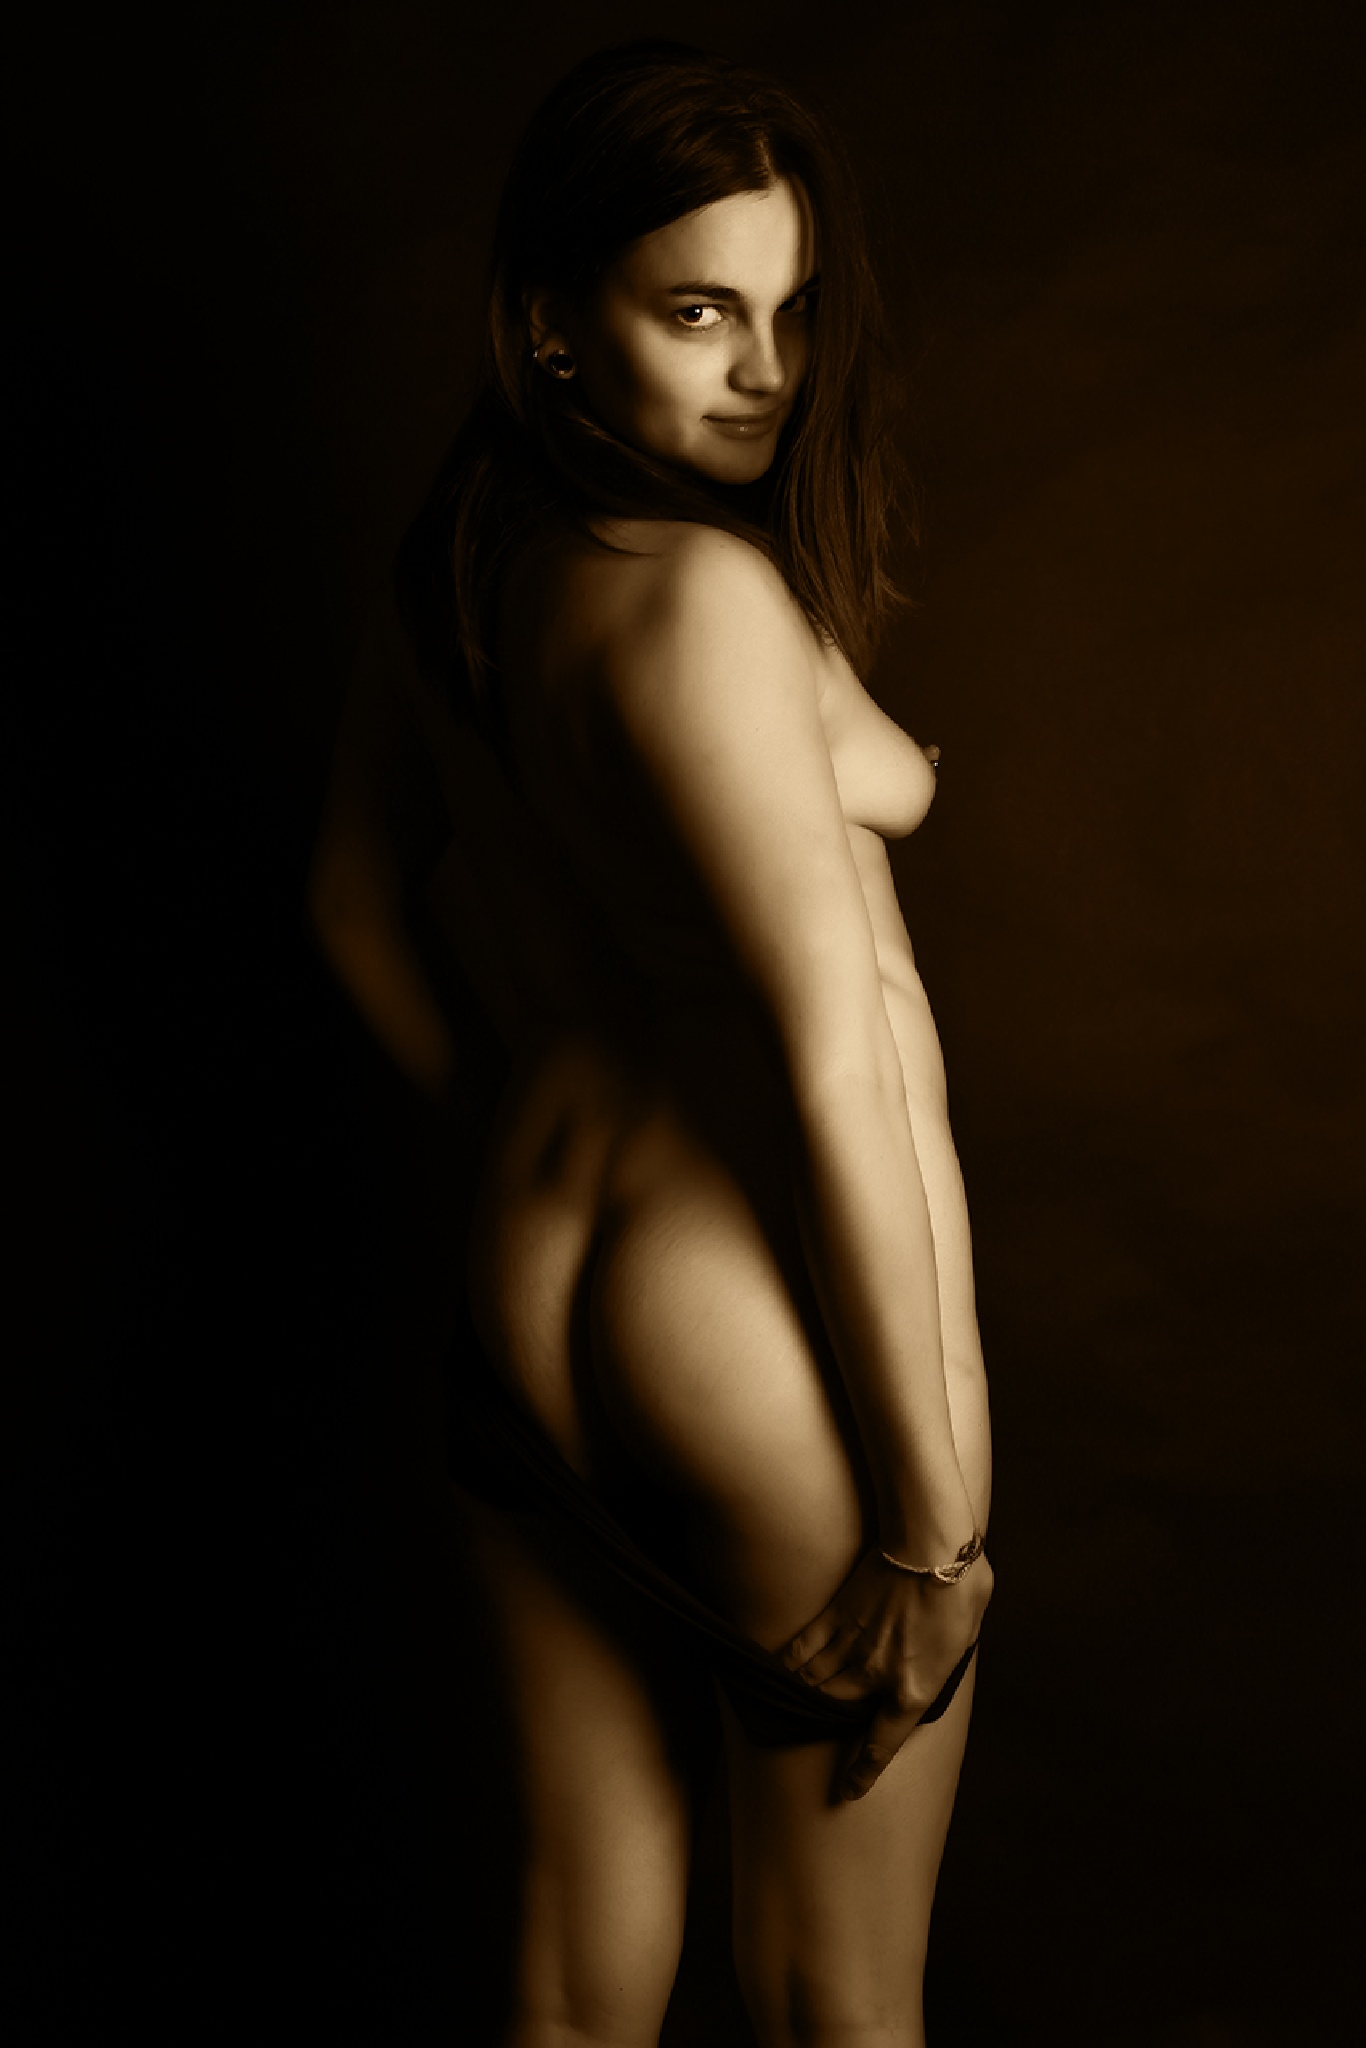 Nude back in ocre by Hybryds